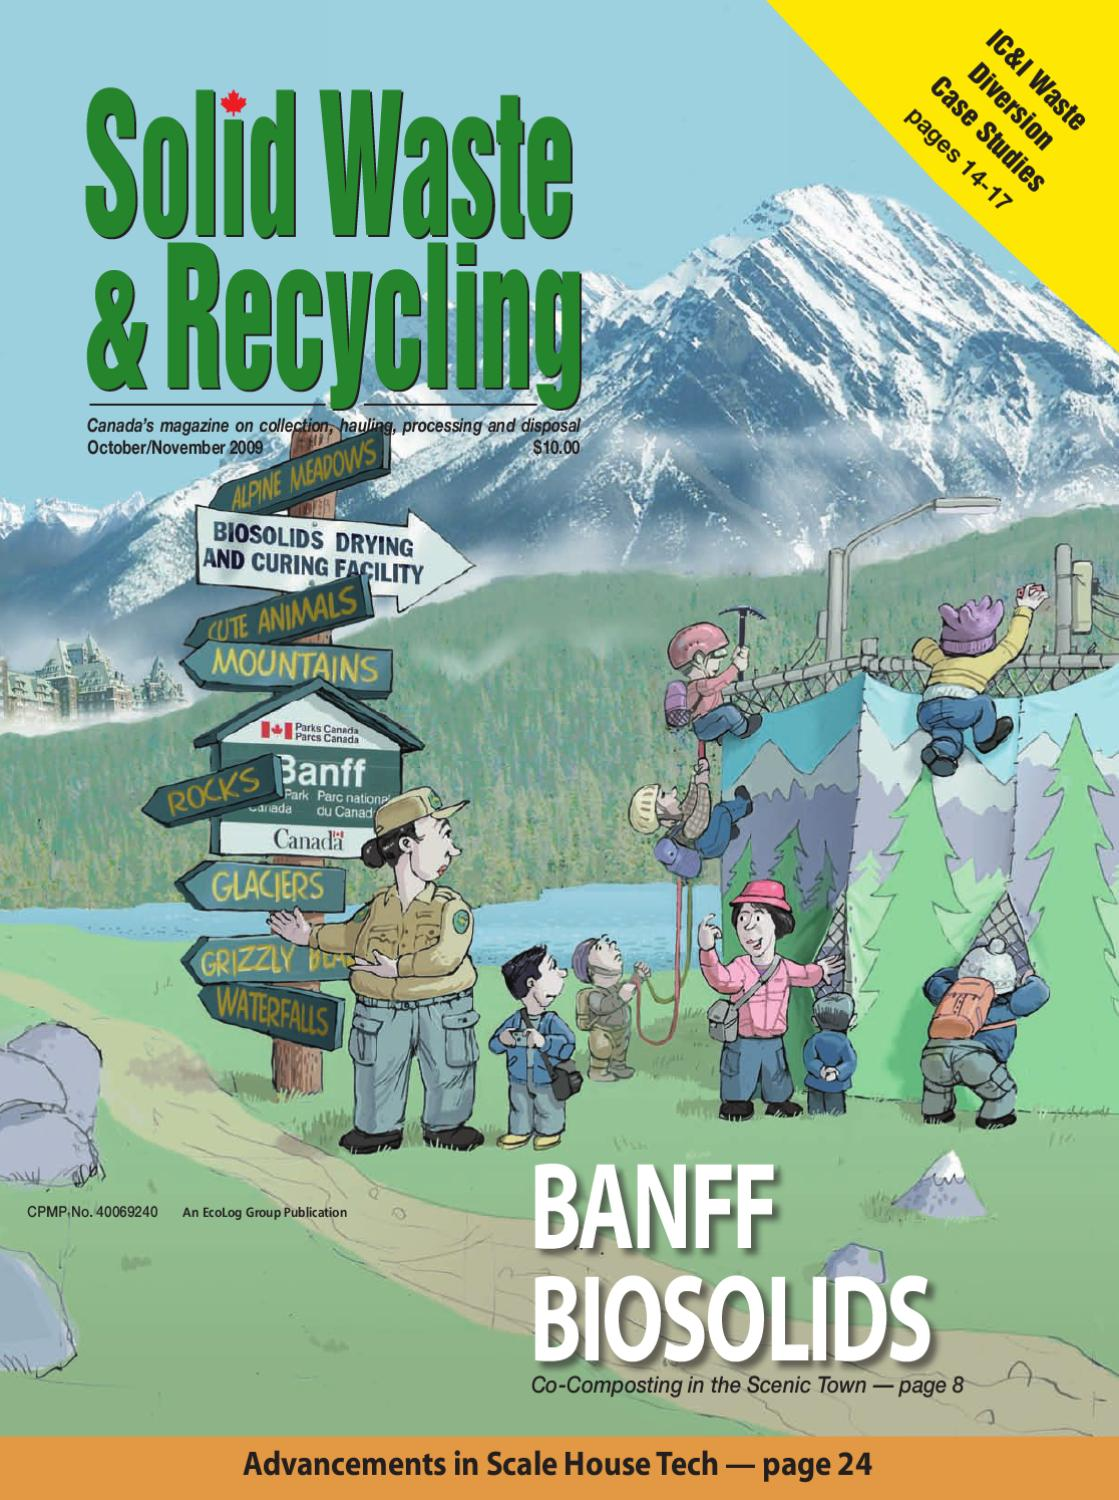 Solid Waste & Recycling October/November 2009 by Annex-Newcom LP - issuu